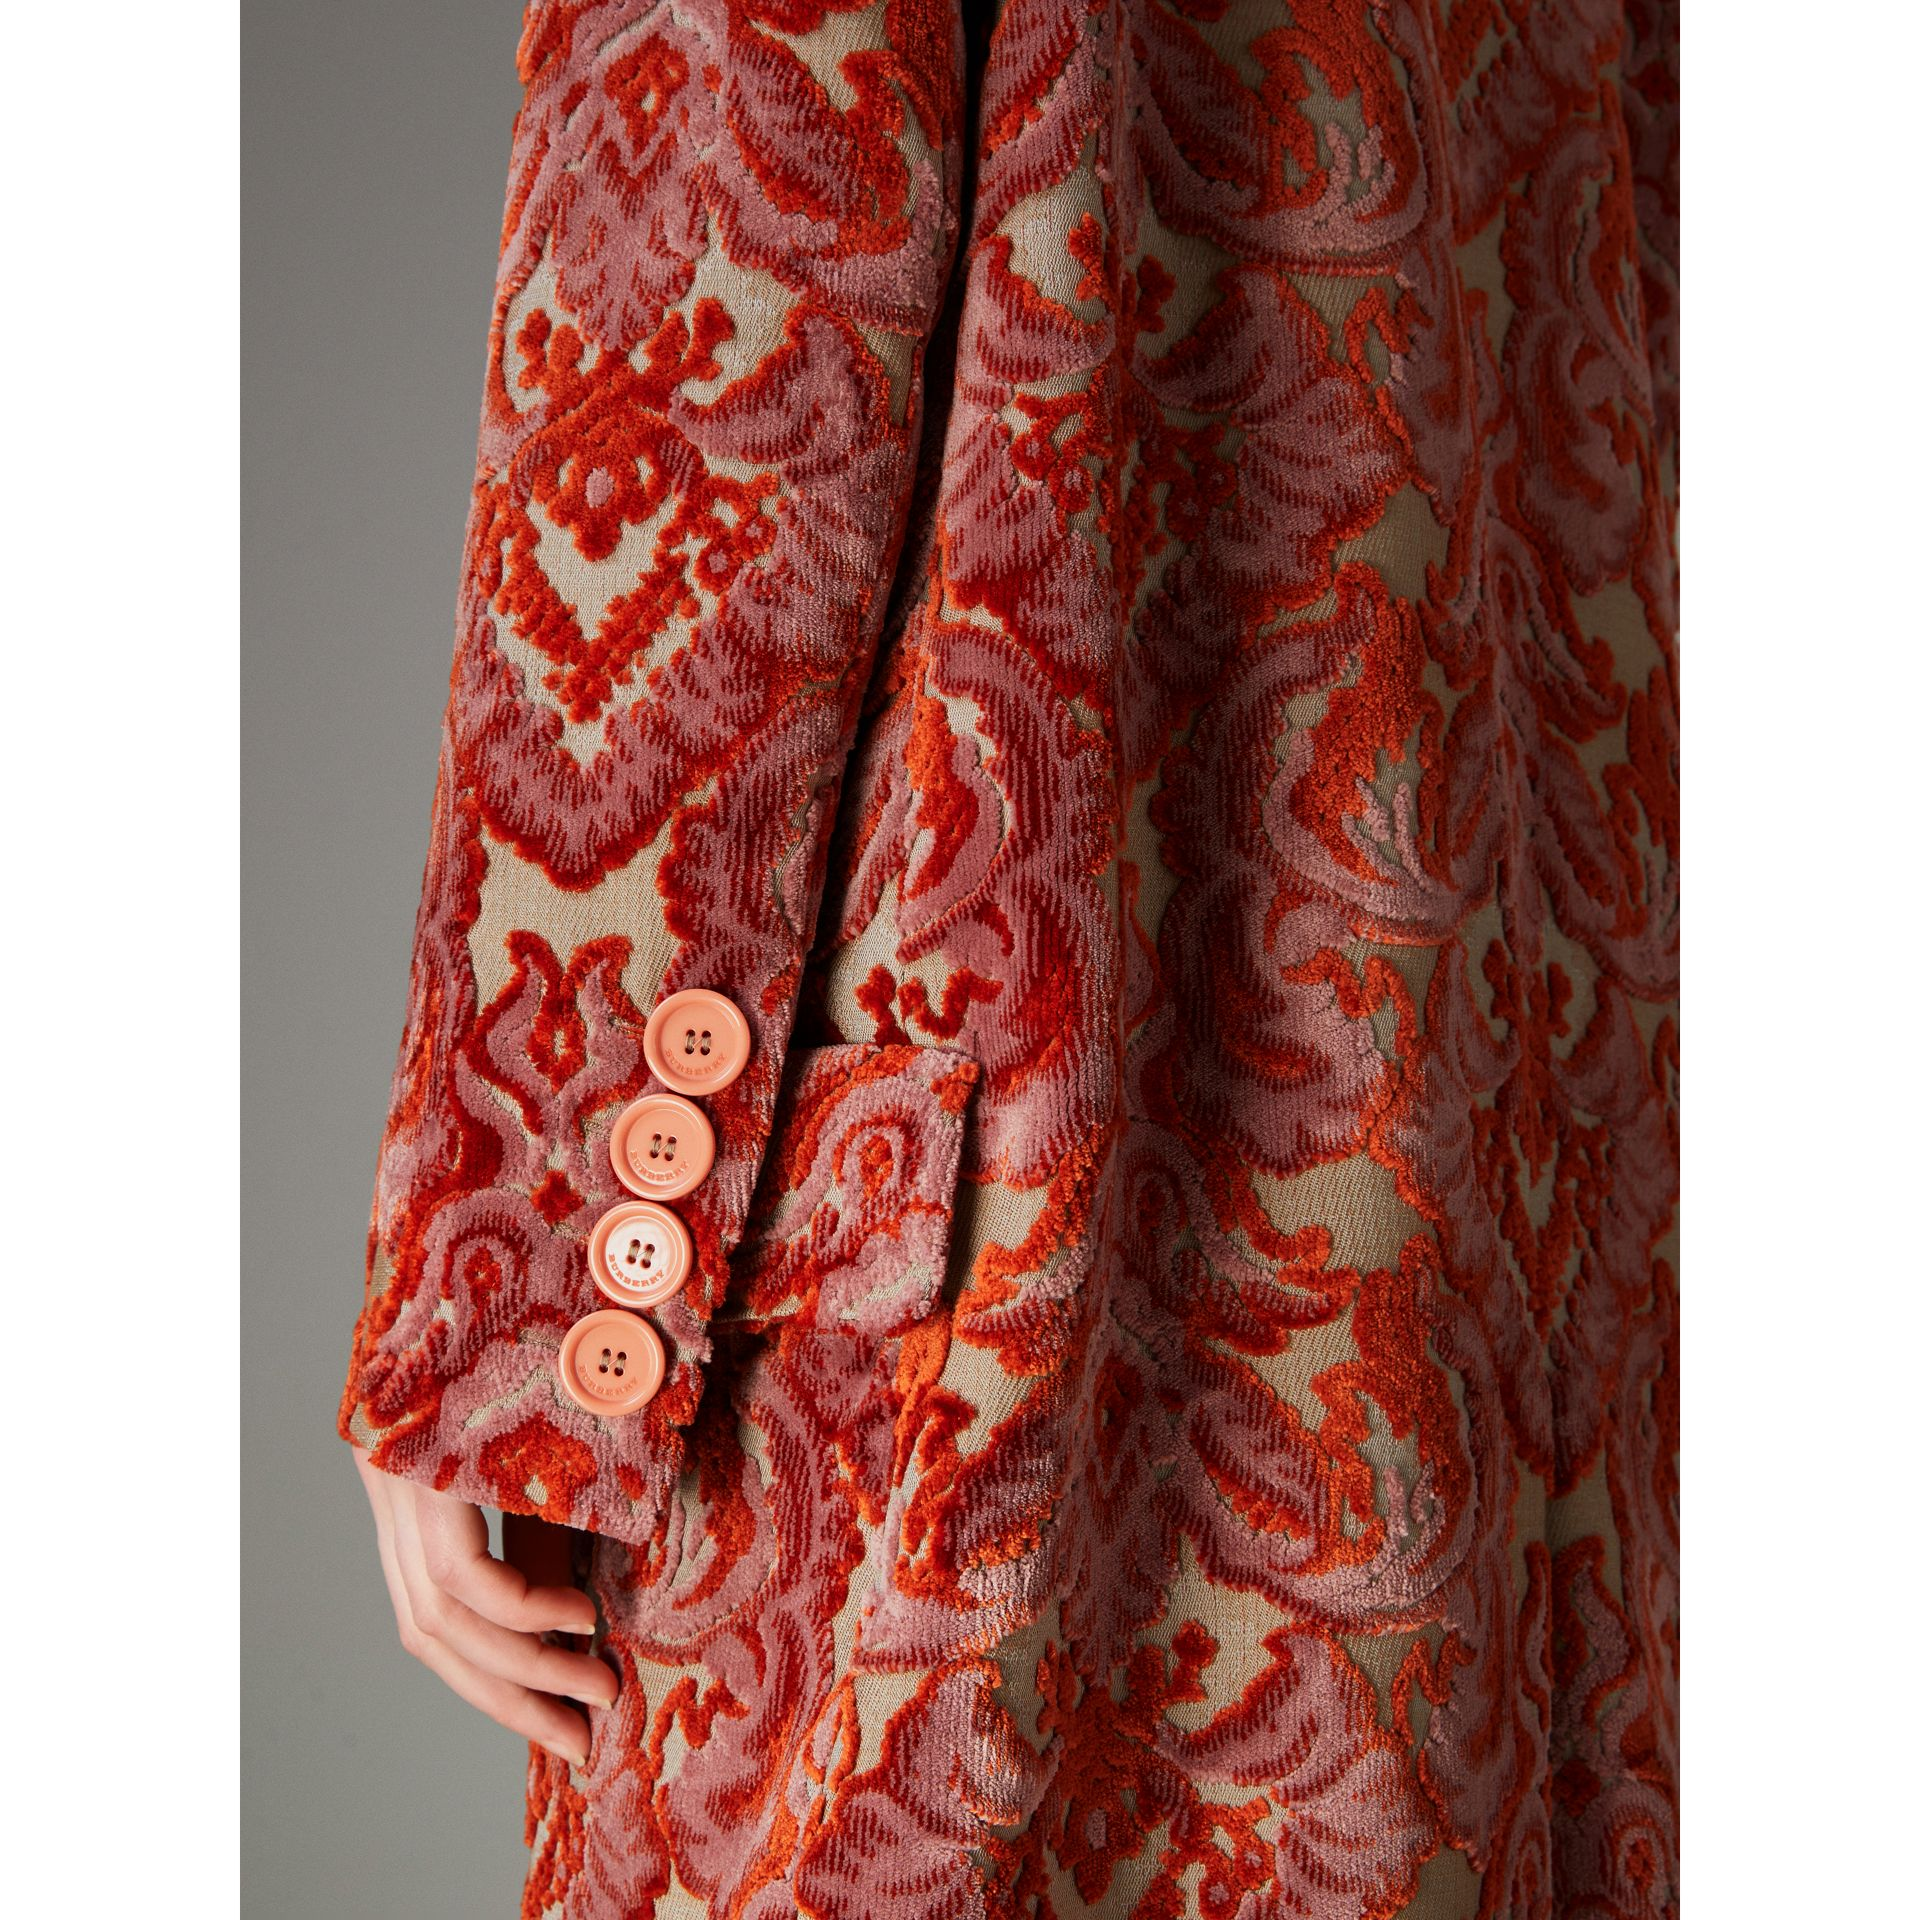 Damask Velvet Jacquard Tailored Coat in Rose Pink - Women | Burberry - gallery image 1